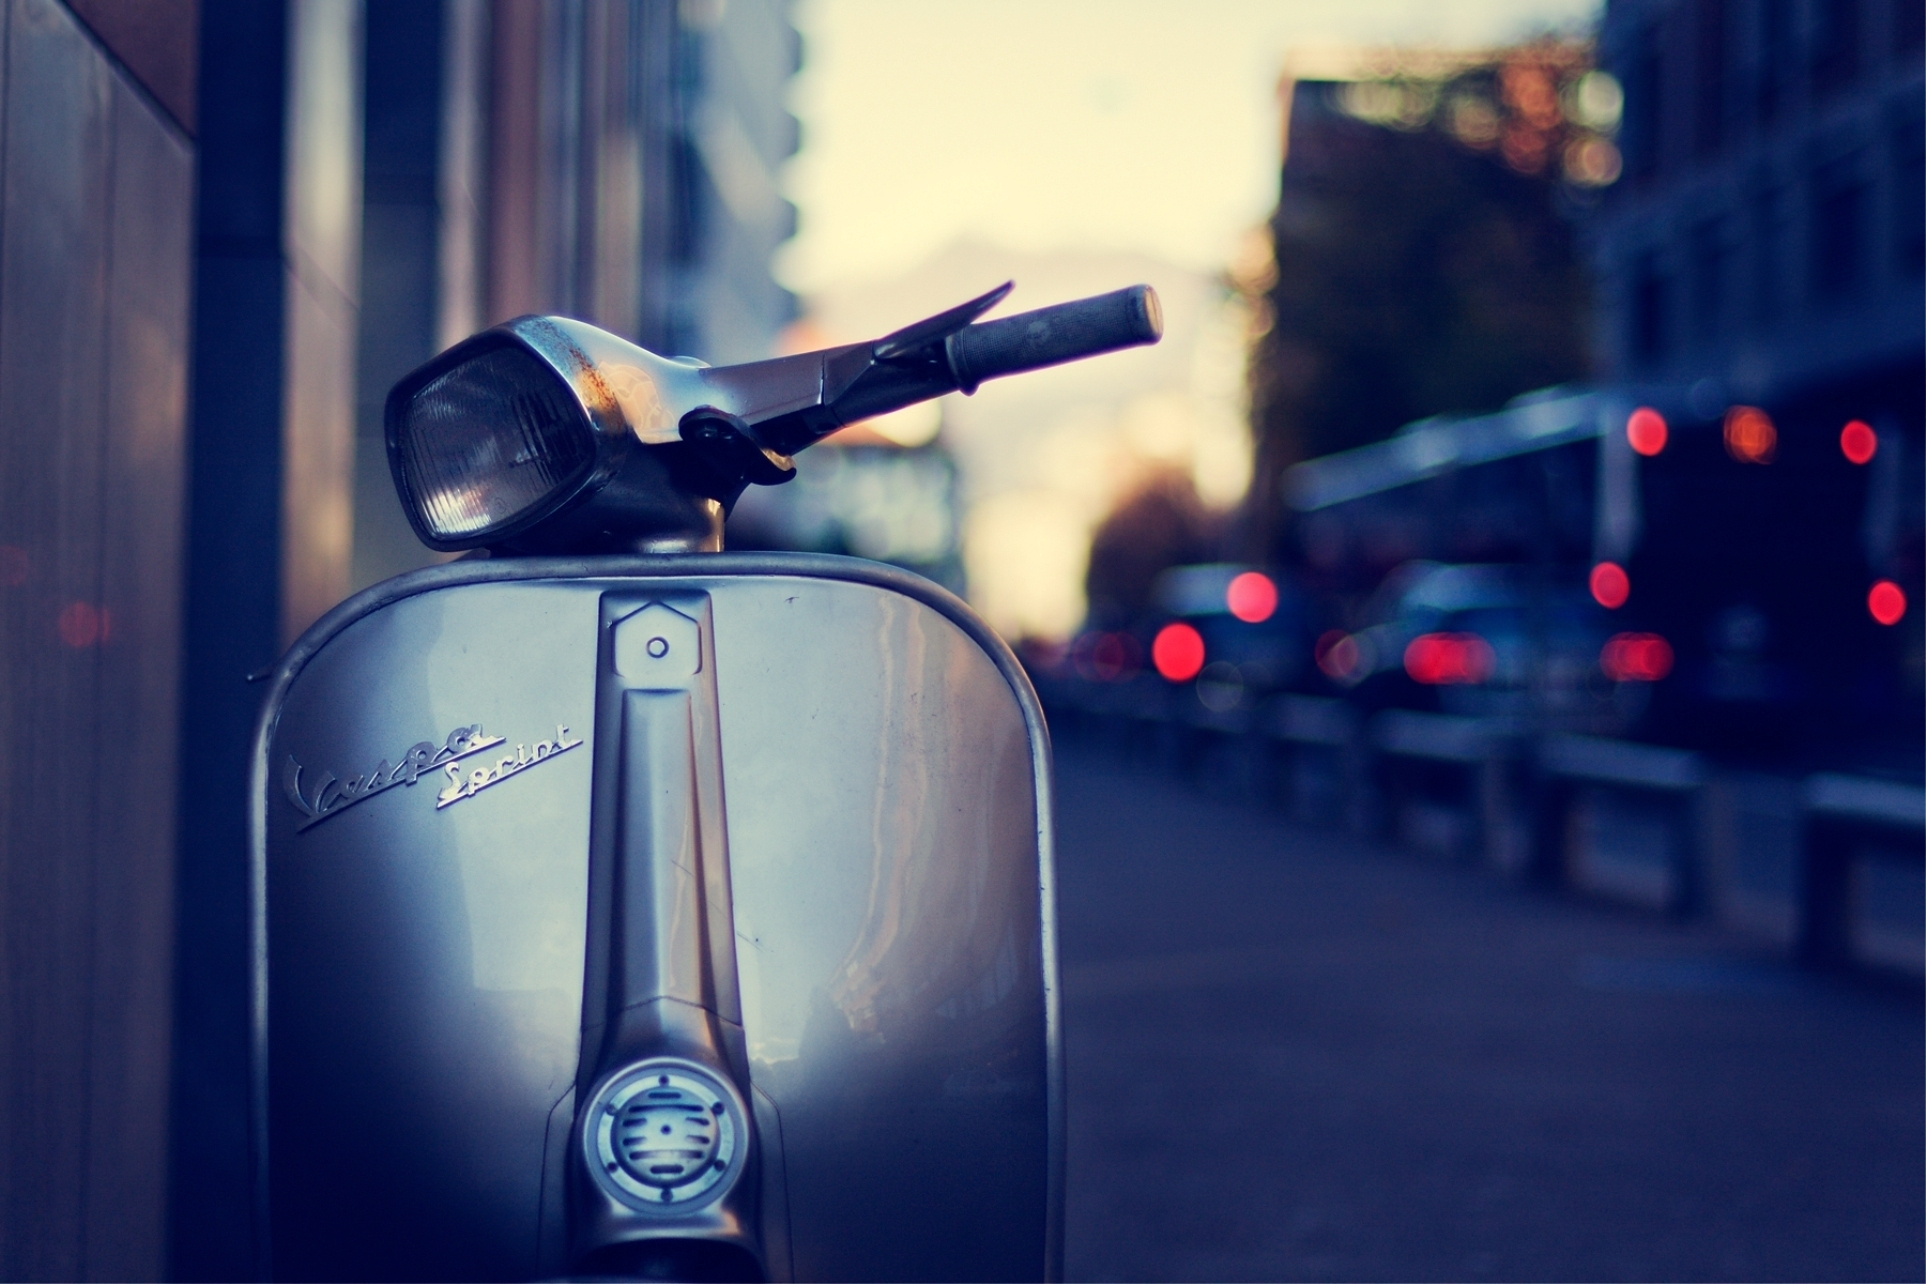 17 Scooter HD Wallpapers Background Images 1926x1284